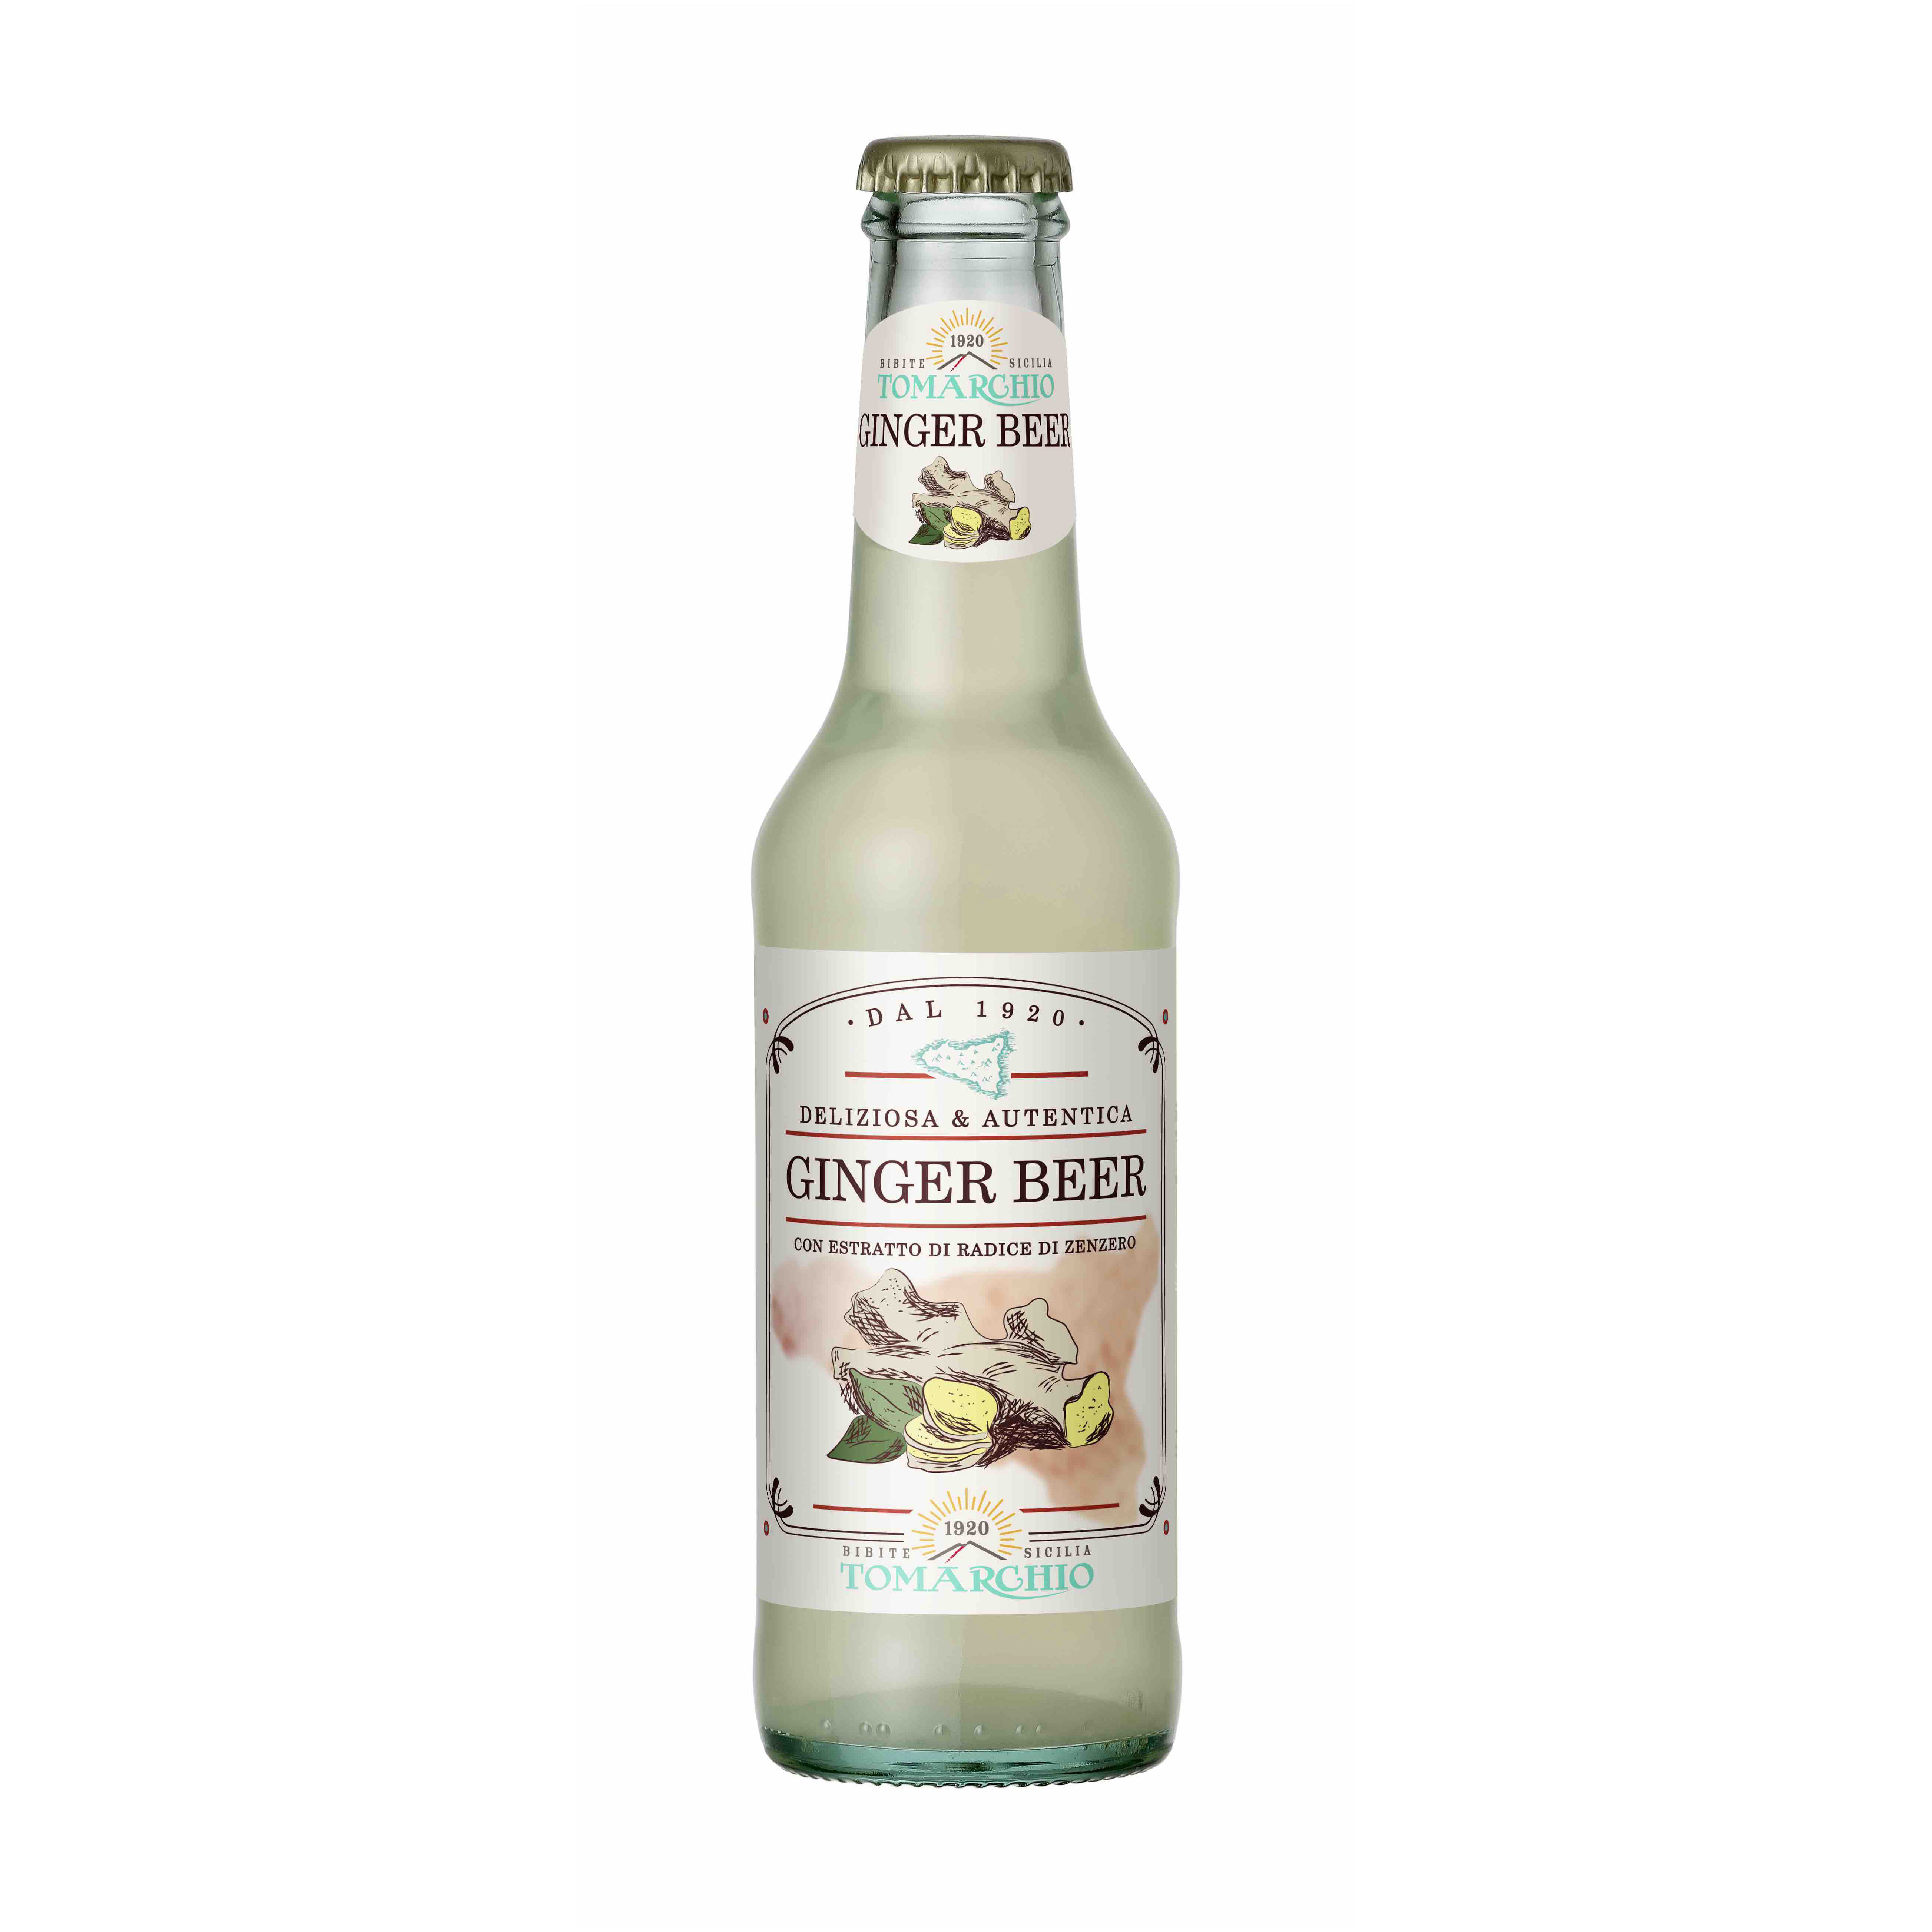 Soft Carbonated Drink Ginger Beer Flavour 275 ml Bottle Made in Italy - Top Quality Italian Ginger Beer